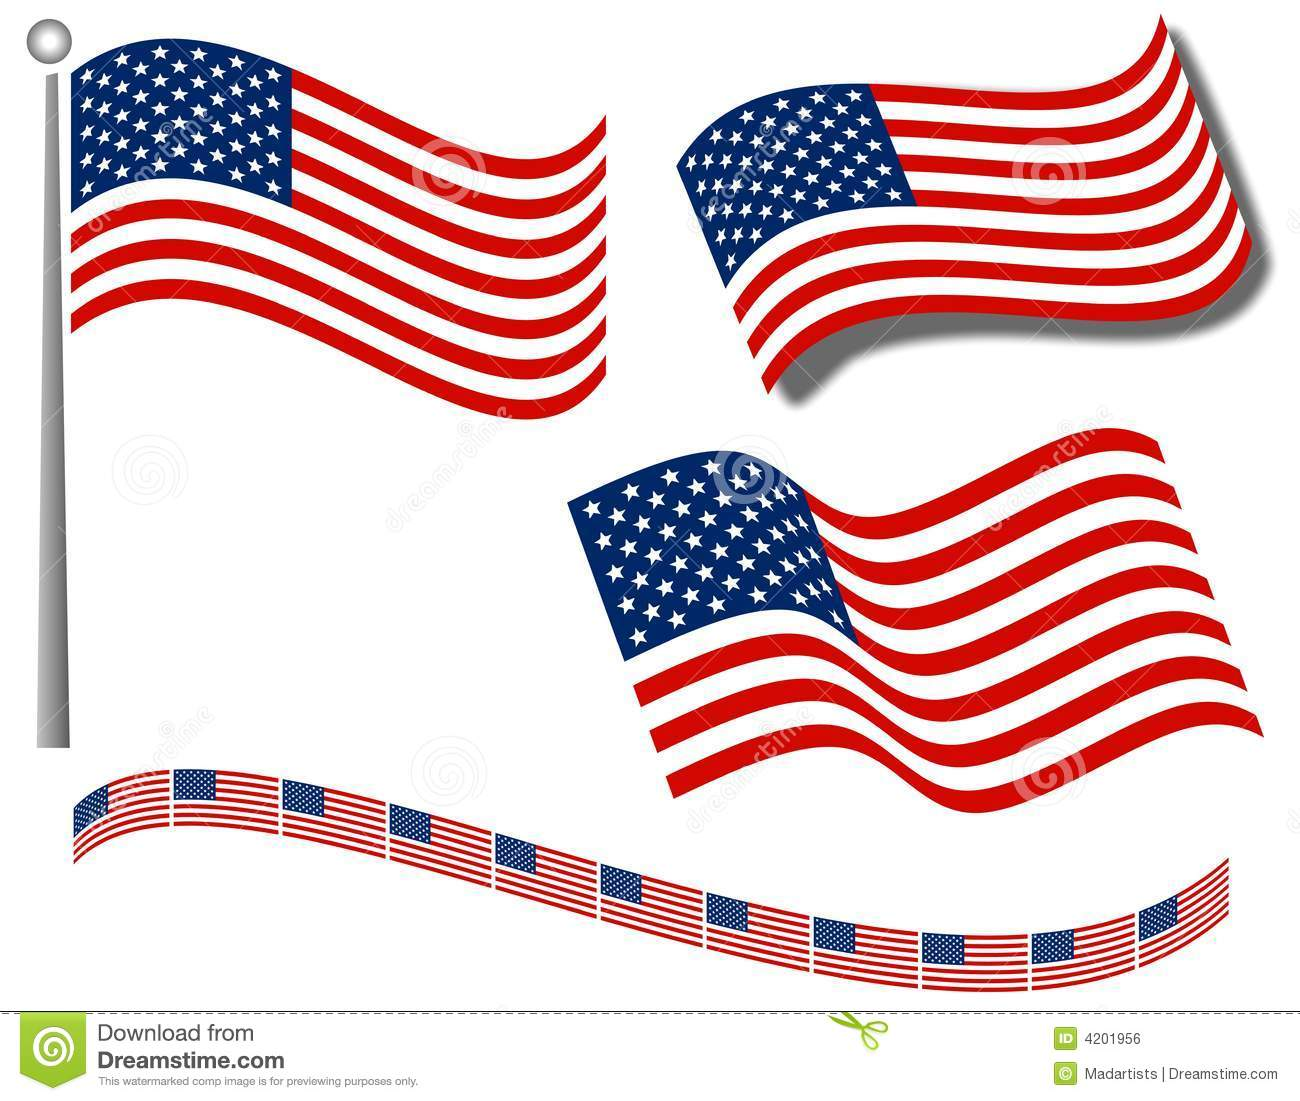 american flags clip art and divider stock illustration rh dreamstime com vintage americana clipart americana clip art png